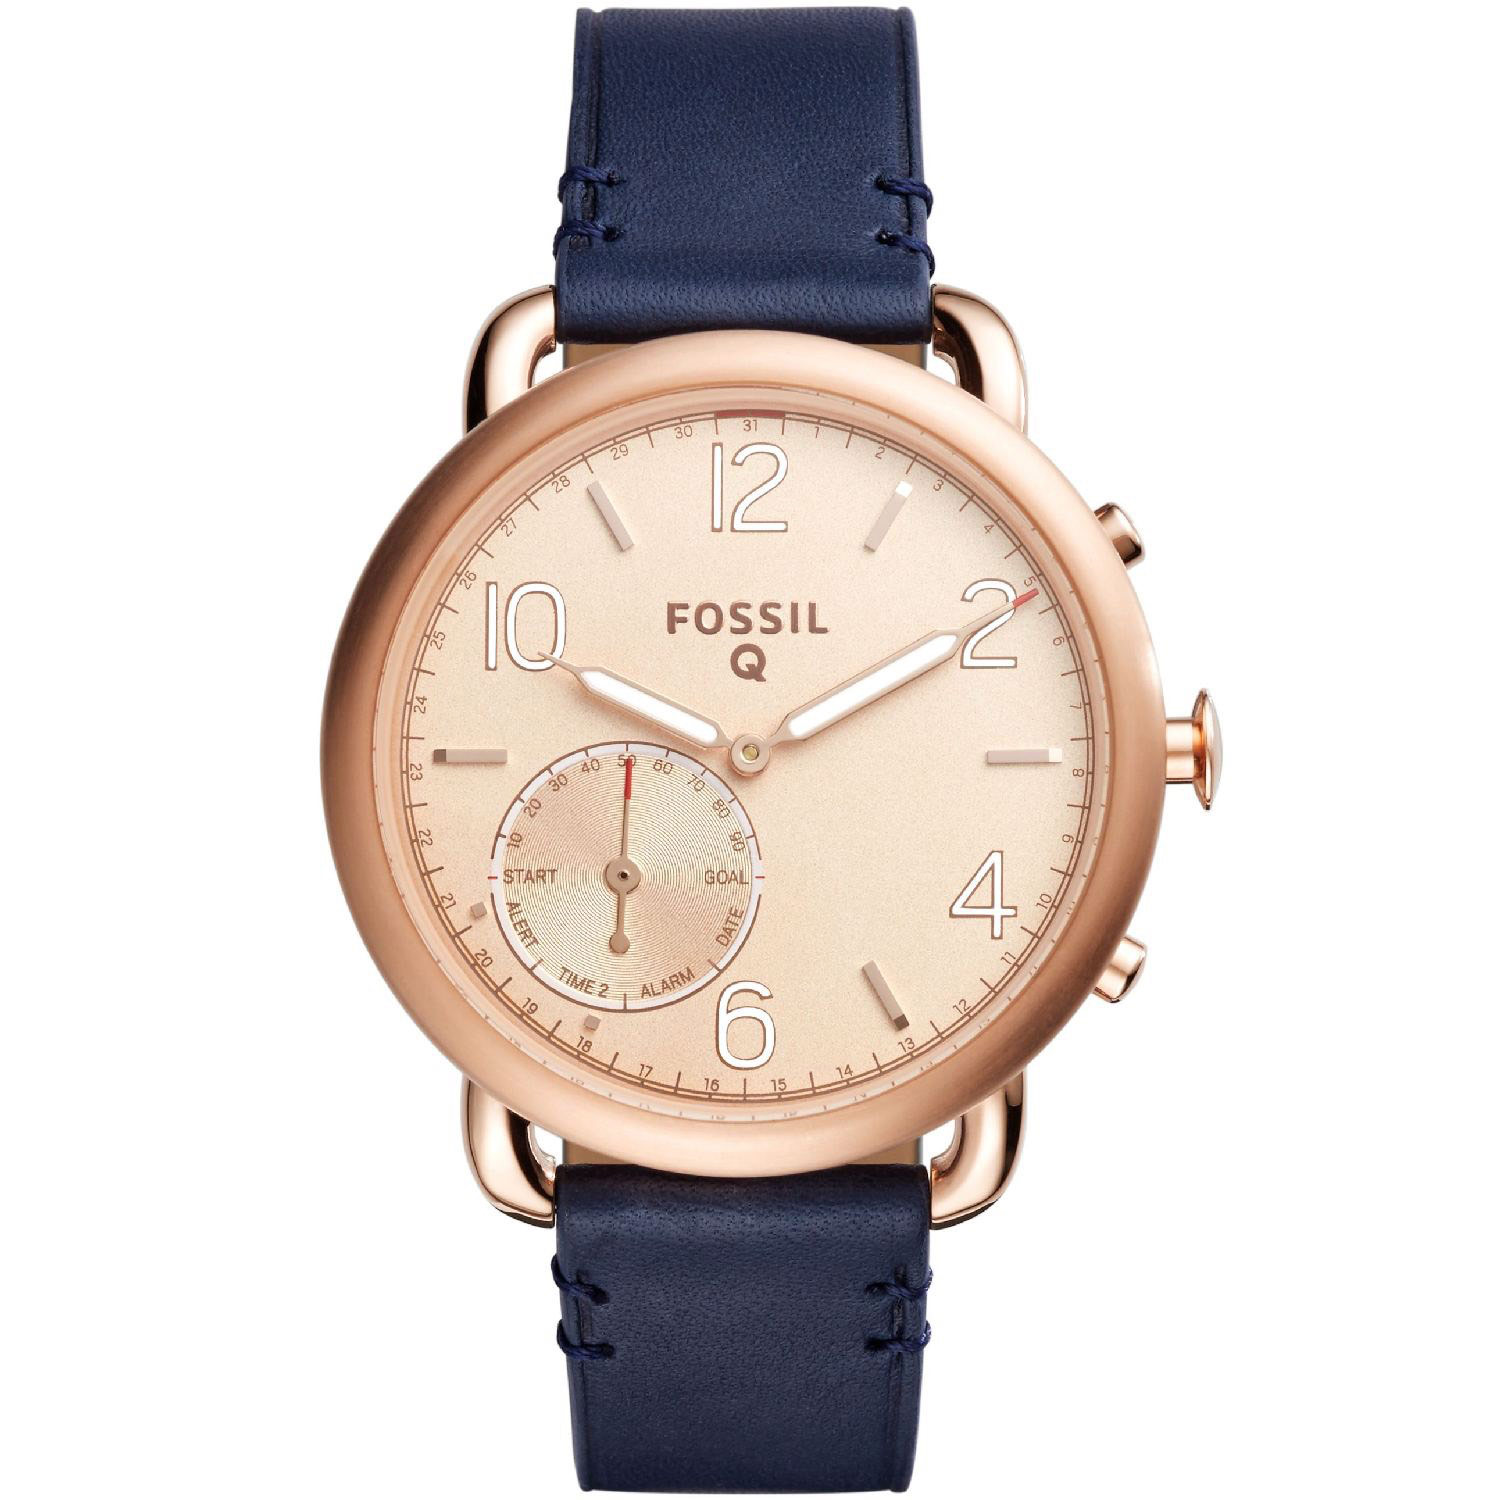 Fossil Q Tailor Hybrid Watch FTW1128